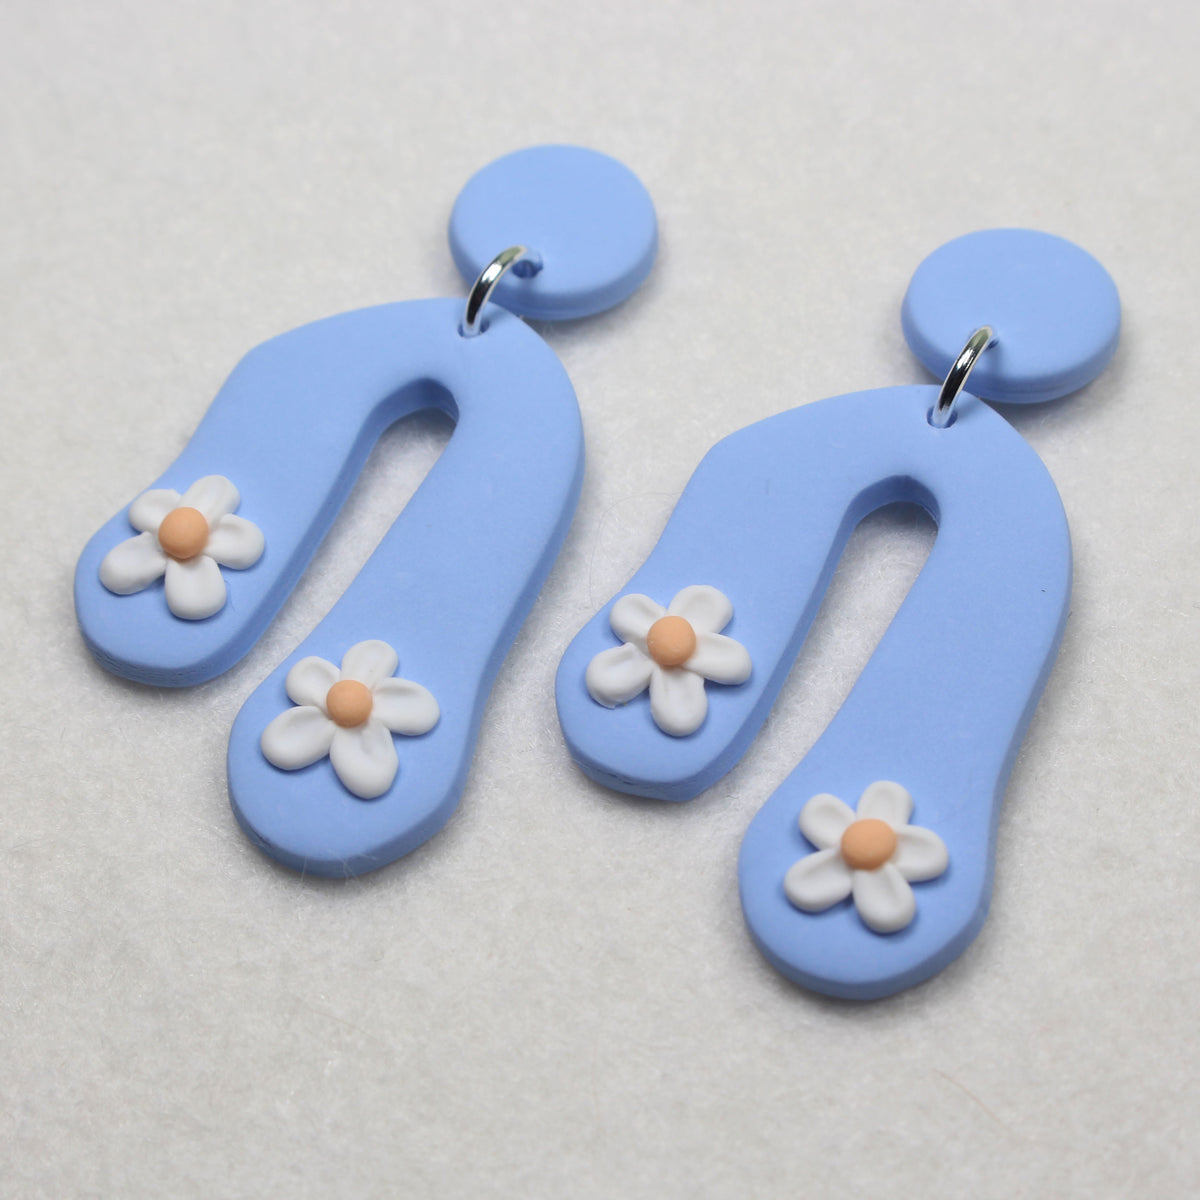 polymer clay stud earrings. hand sculpted daisies on a baby blue background.